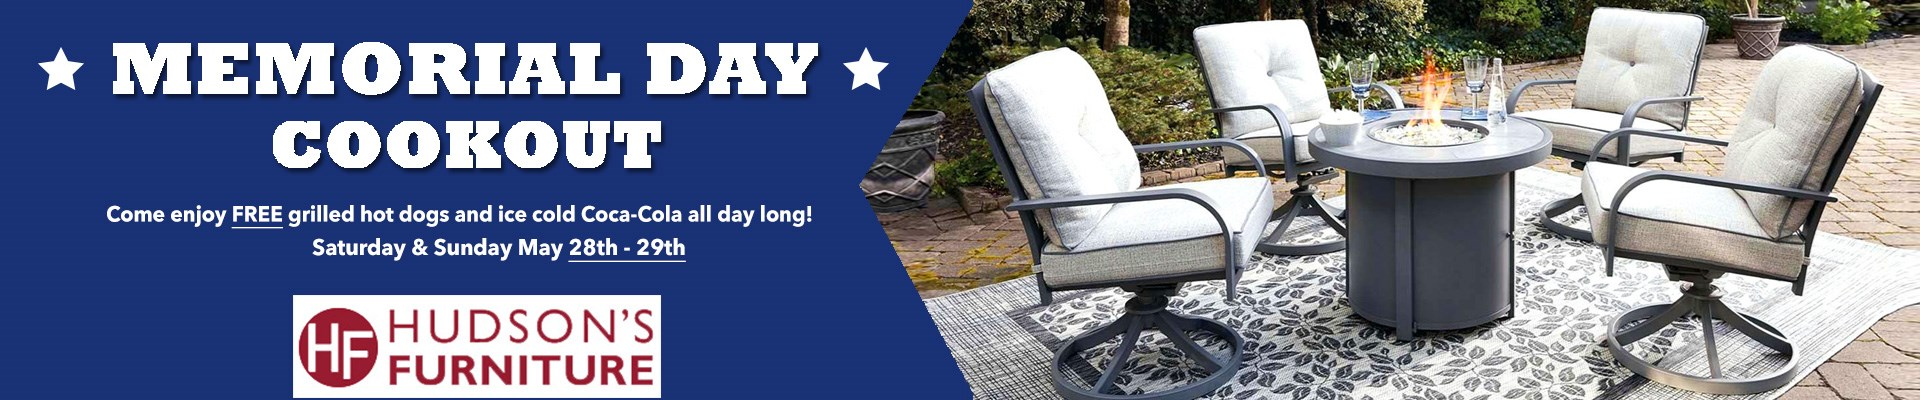 Memorial Day Furniture Sale at Hudson's Furniture Free Food All Day